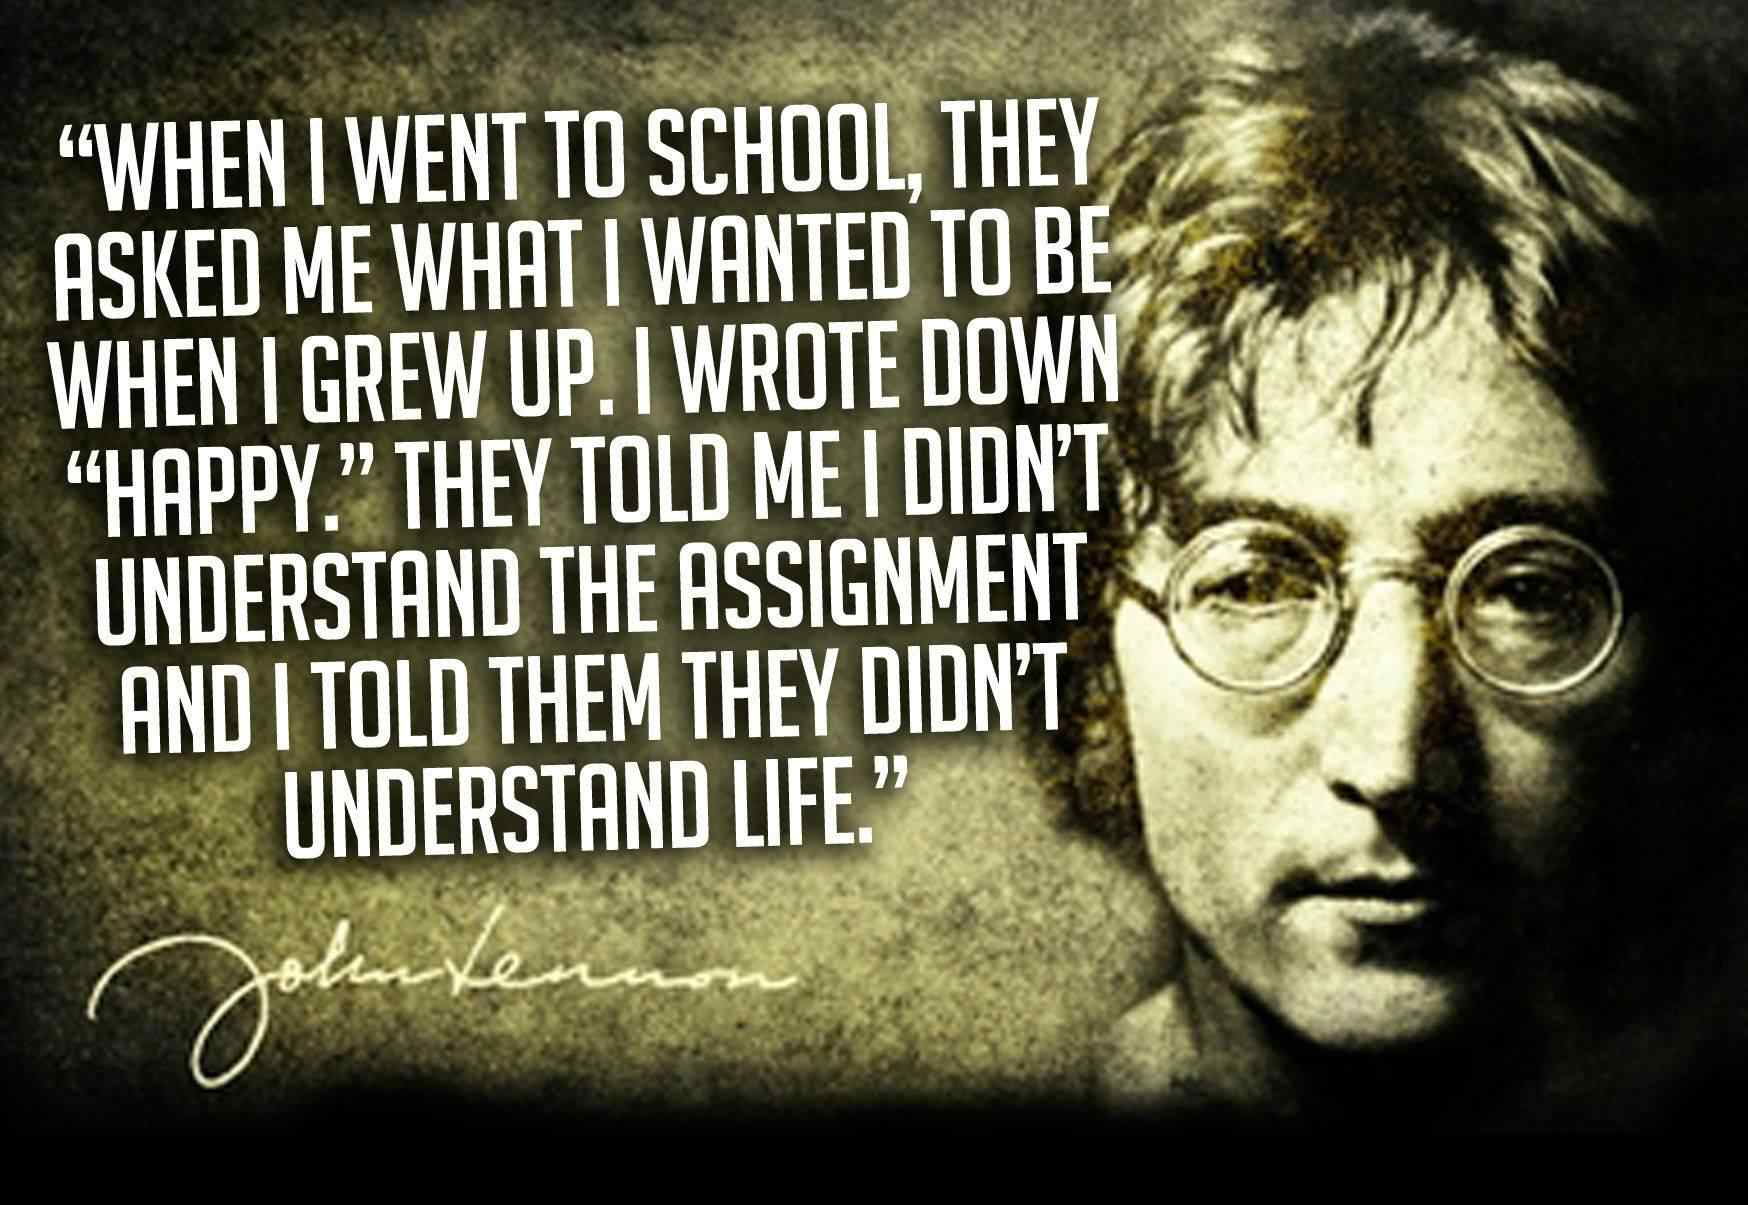 Peacemaker Quotes John Lennon Quotes  Thoughts From A Psychedelic Mind  Third Monk